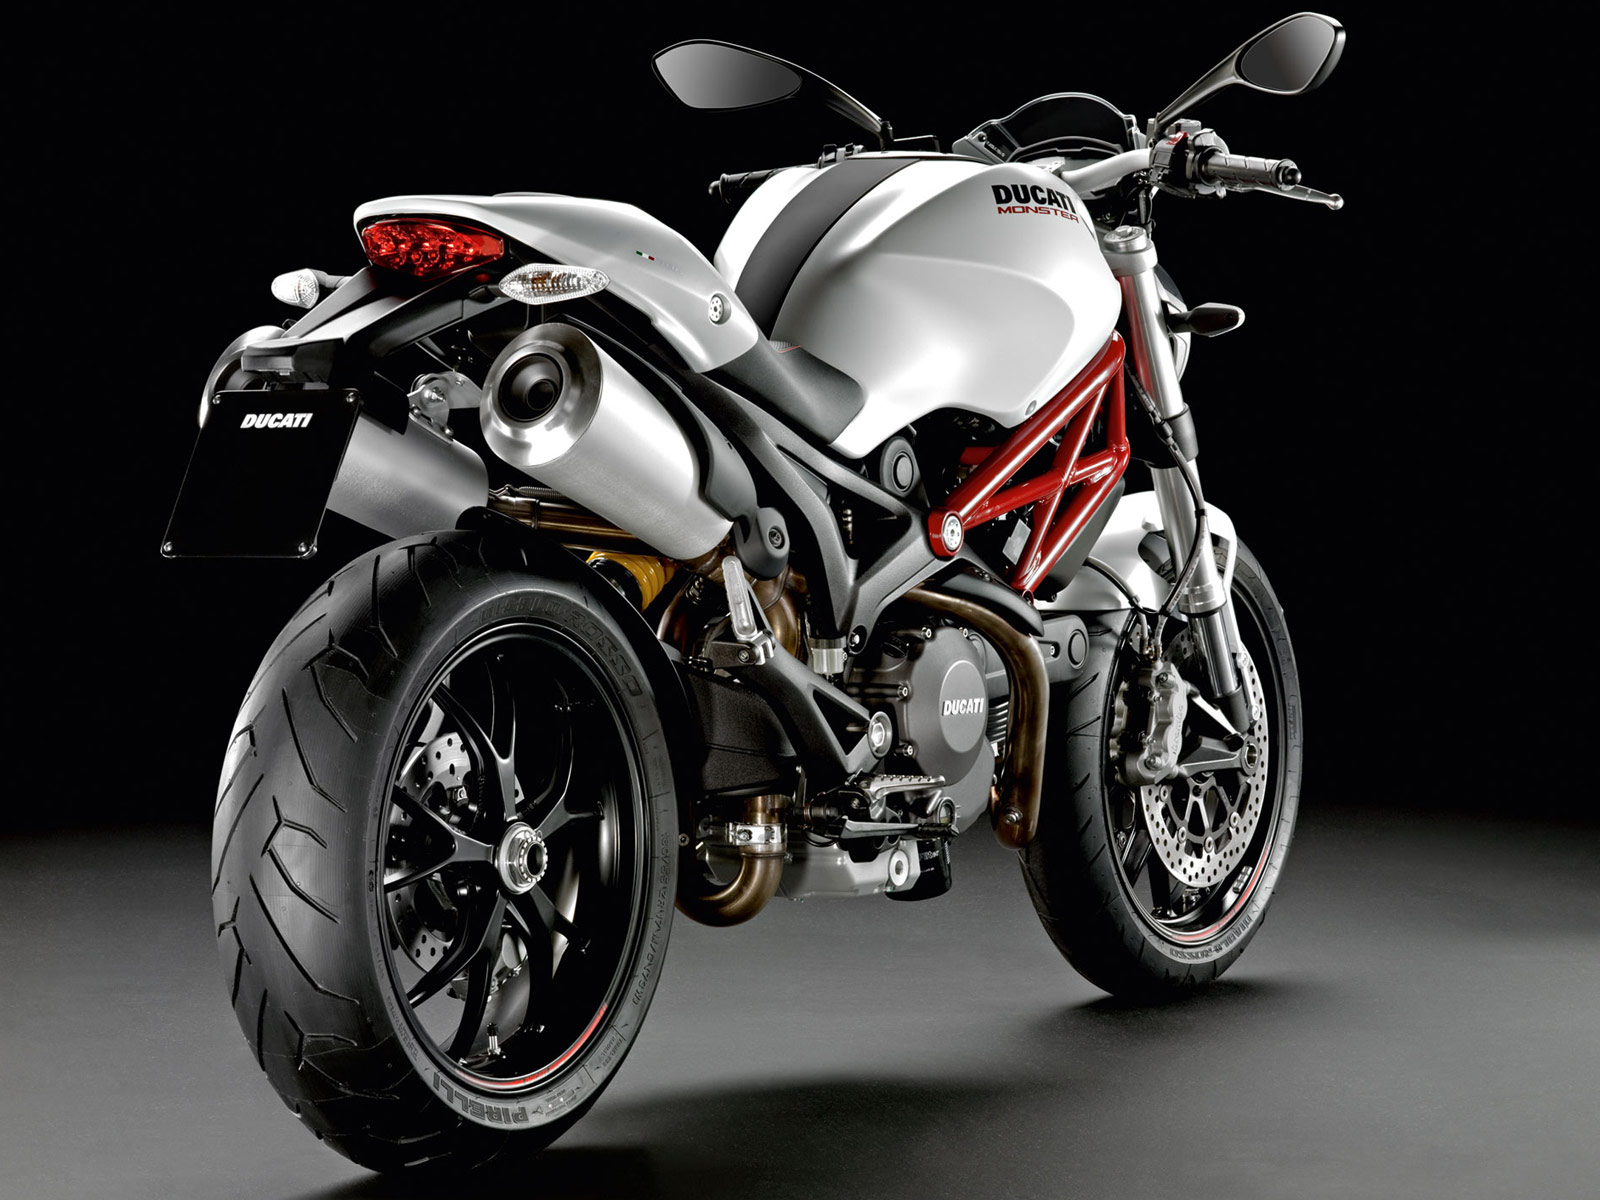 2013 ducati monster 796 motorcycle photos and insurance informations. Black Bedroom Furniture Sets. Home Design Ideas